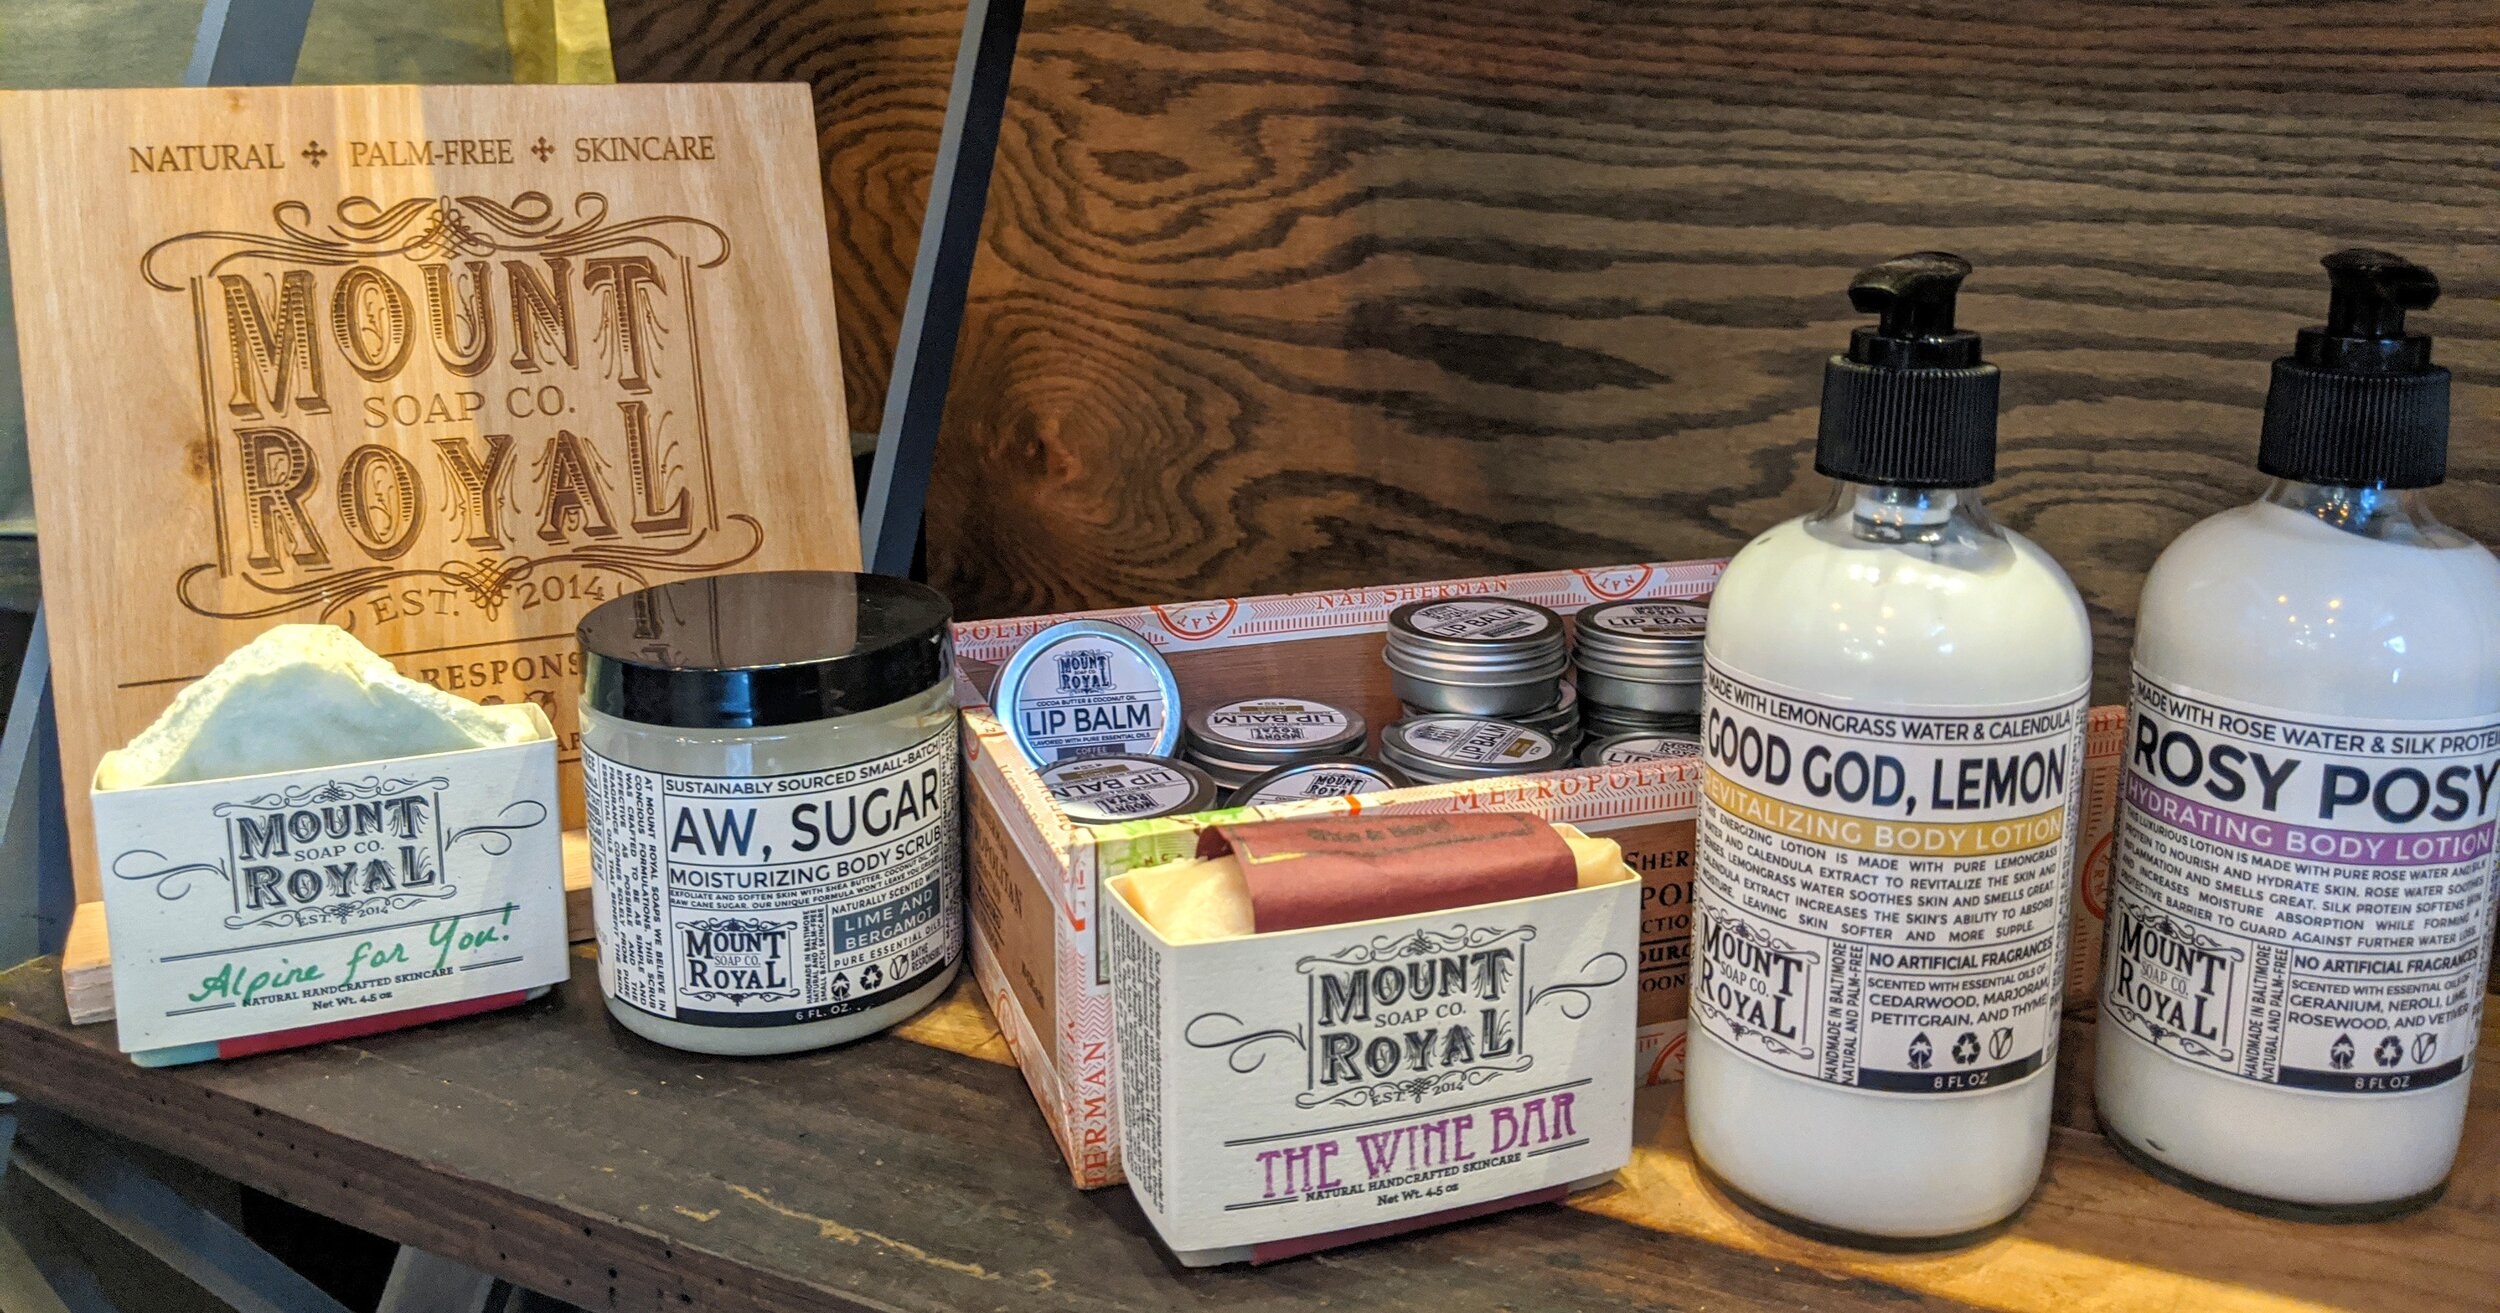 Check out the Mount Royal Soap products in our lobby!